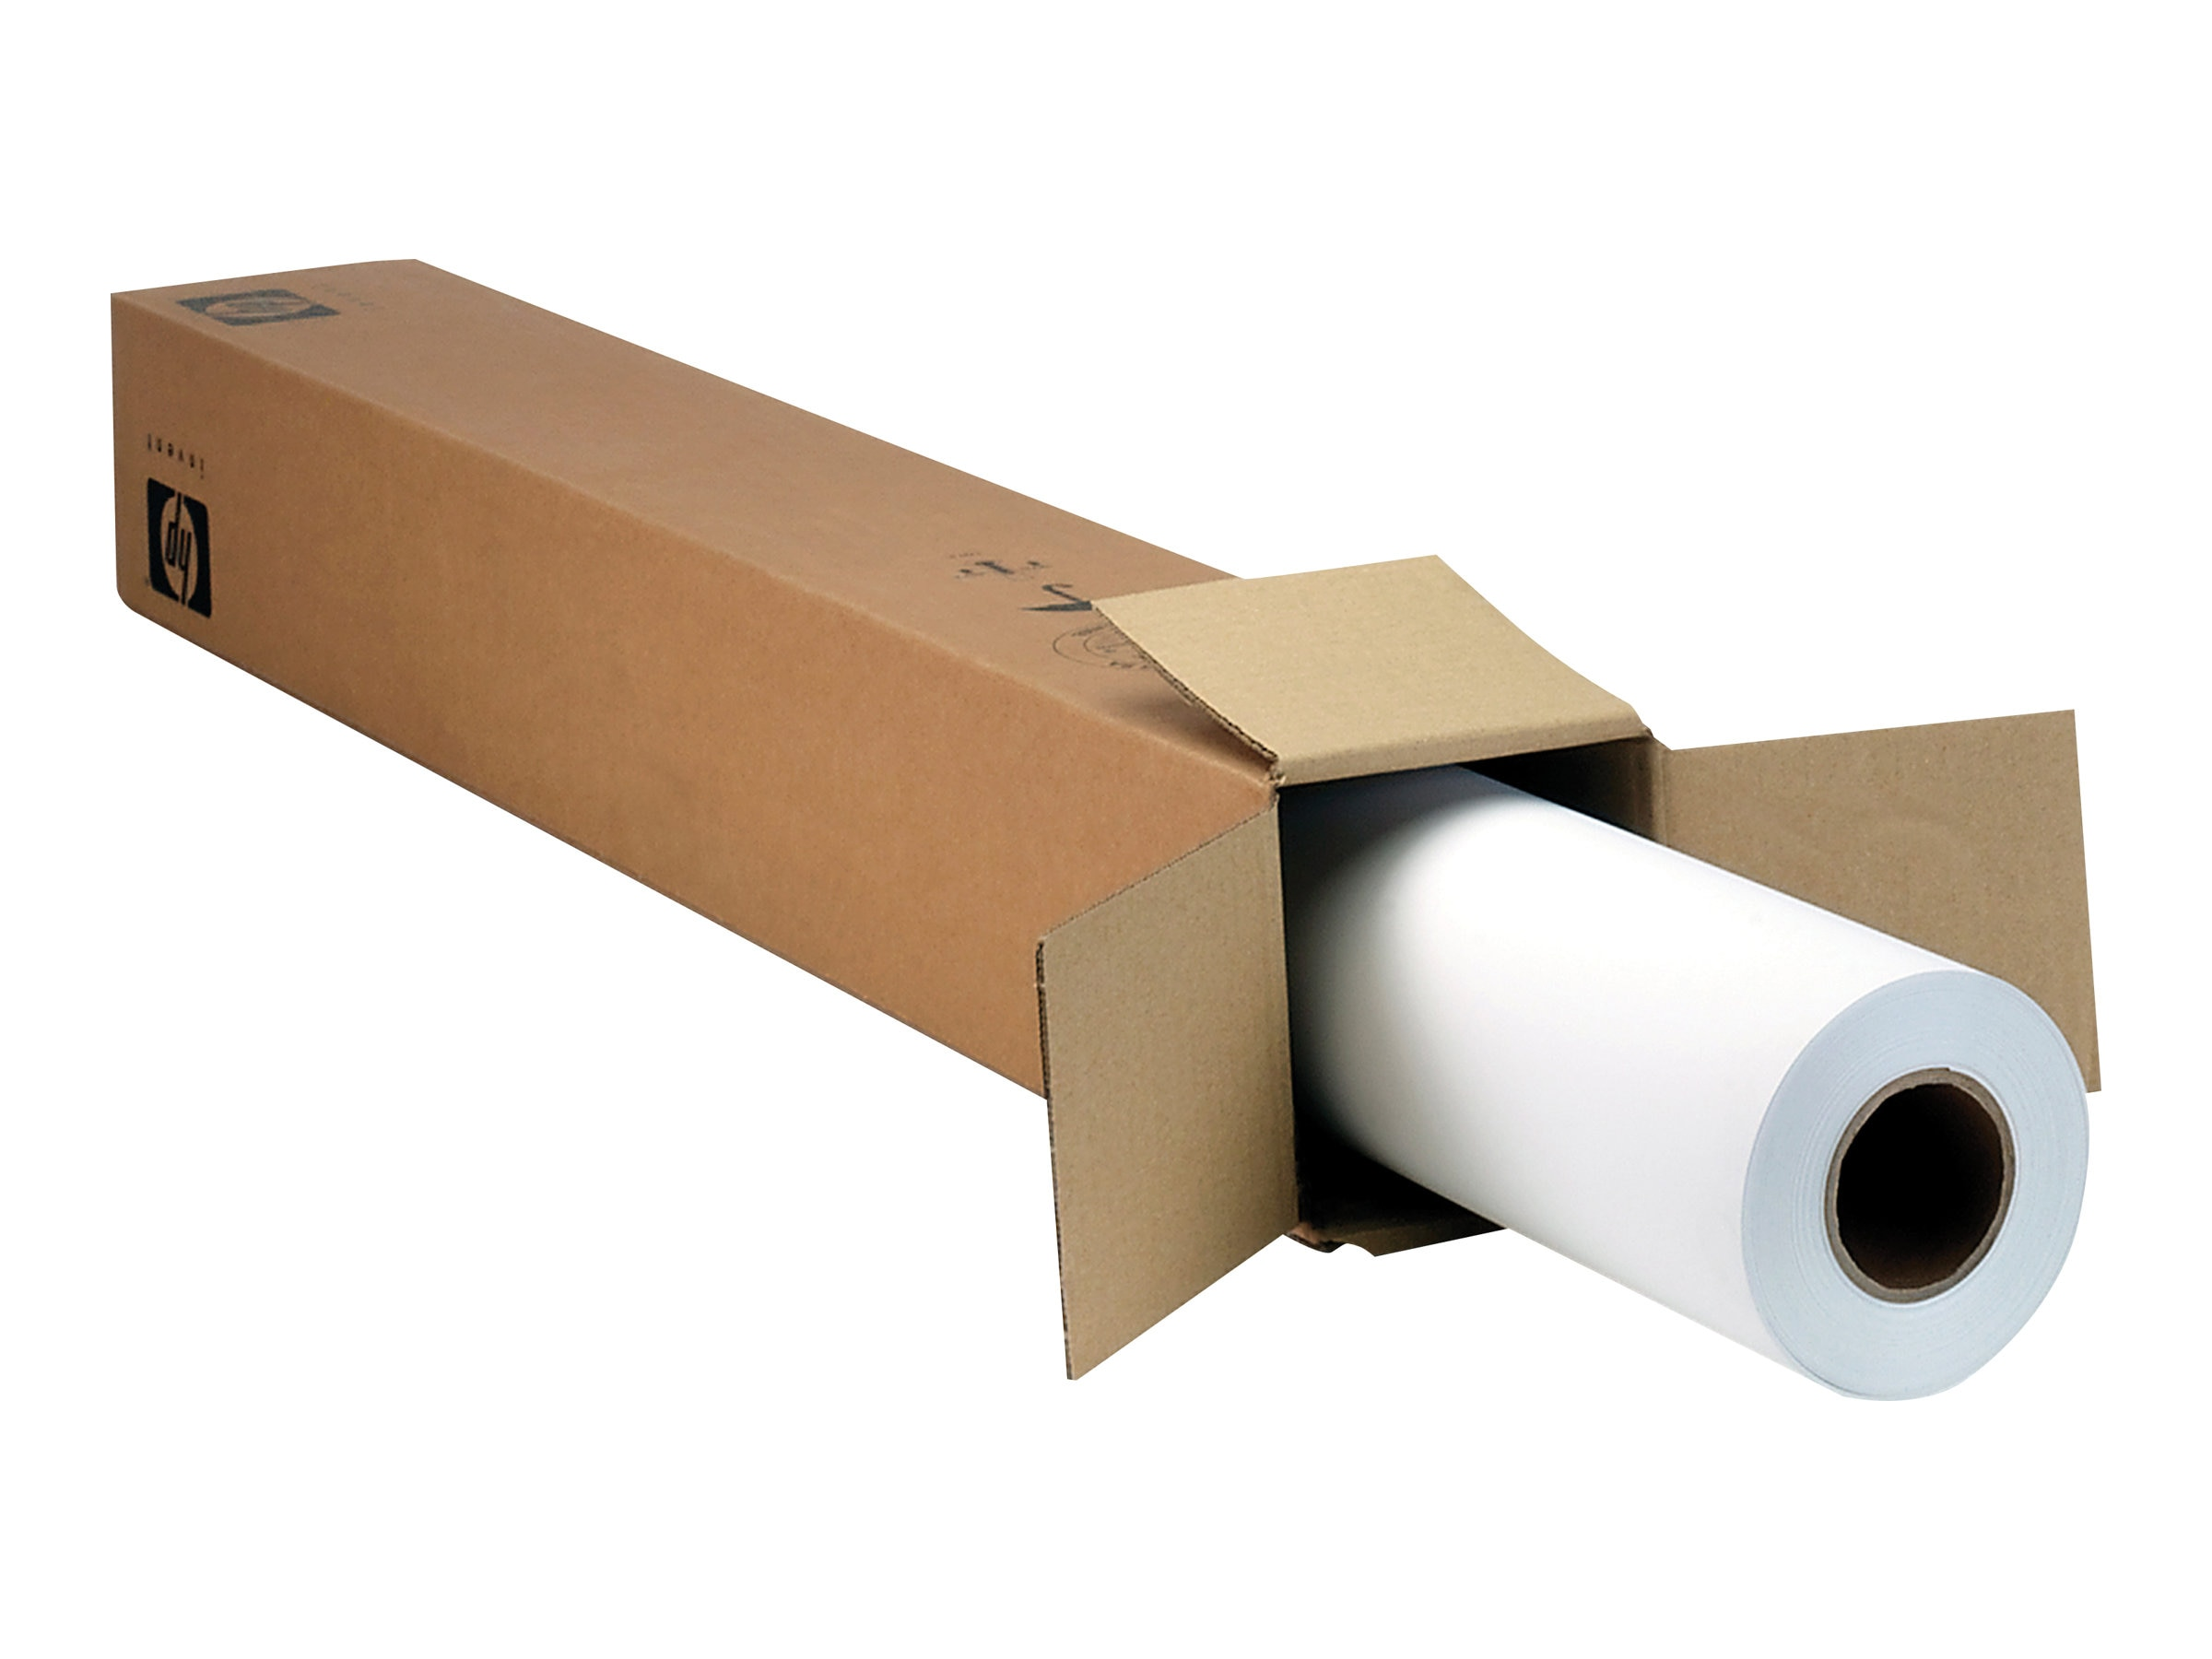 HP 60 x 100' Everyday Matte Polypropylene (2 Rolls), CH027A, 10202415, Paper, Labels & Other Print Media